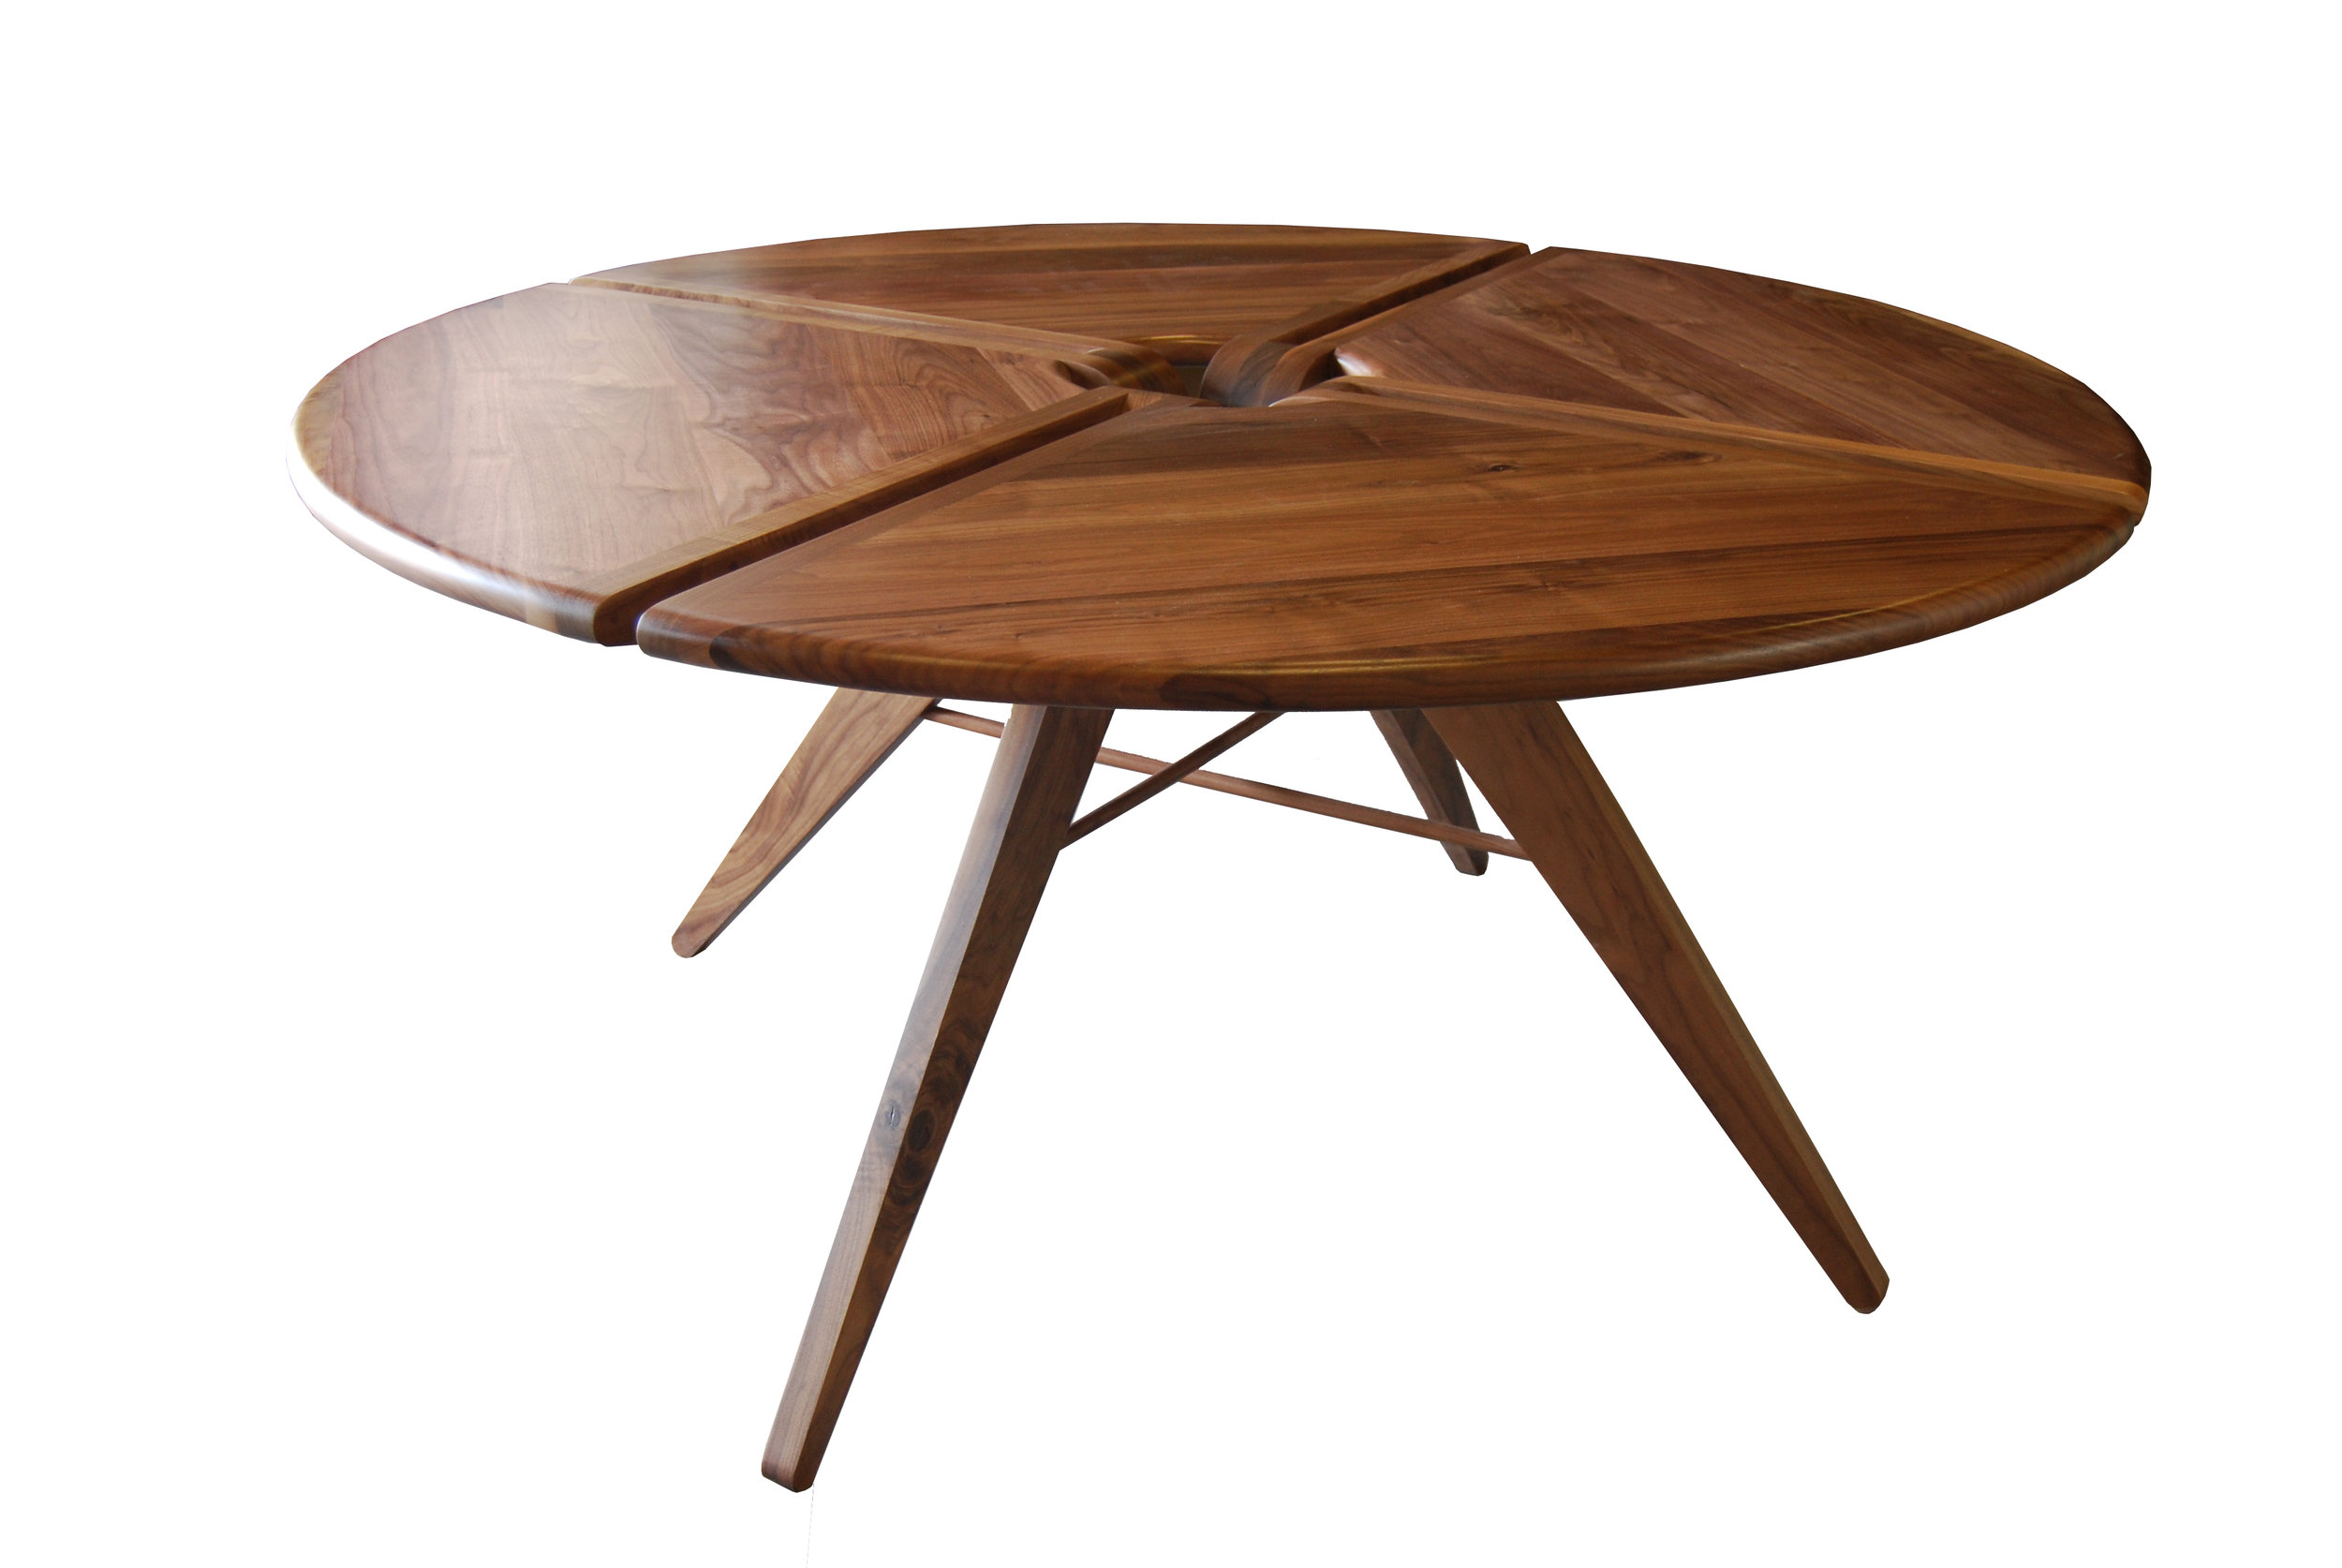 60 Round Dining Table Walnut New Breed Furniture